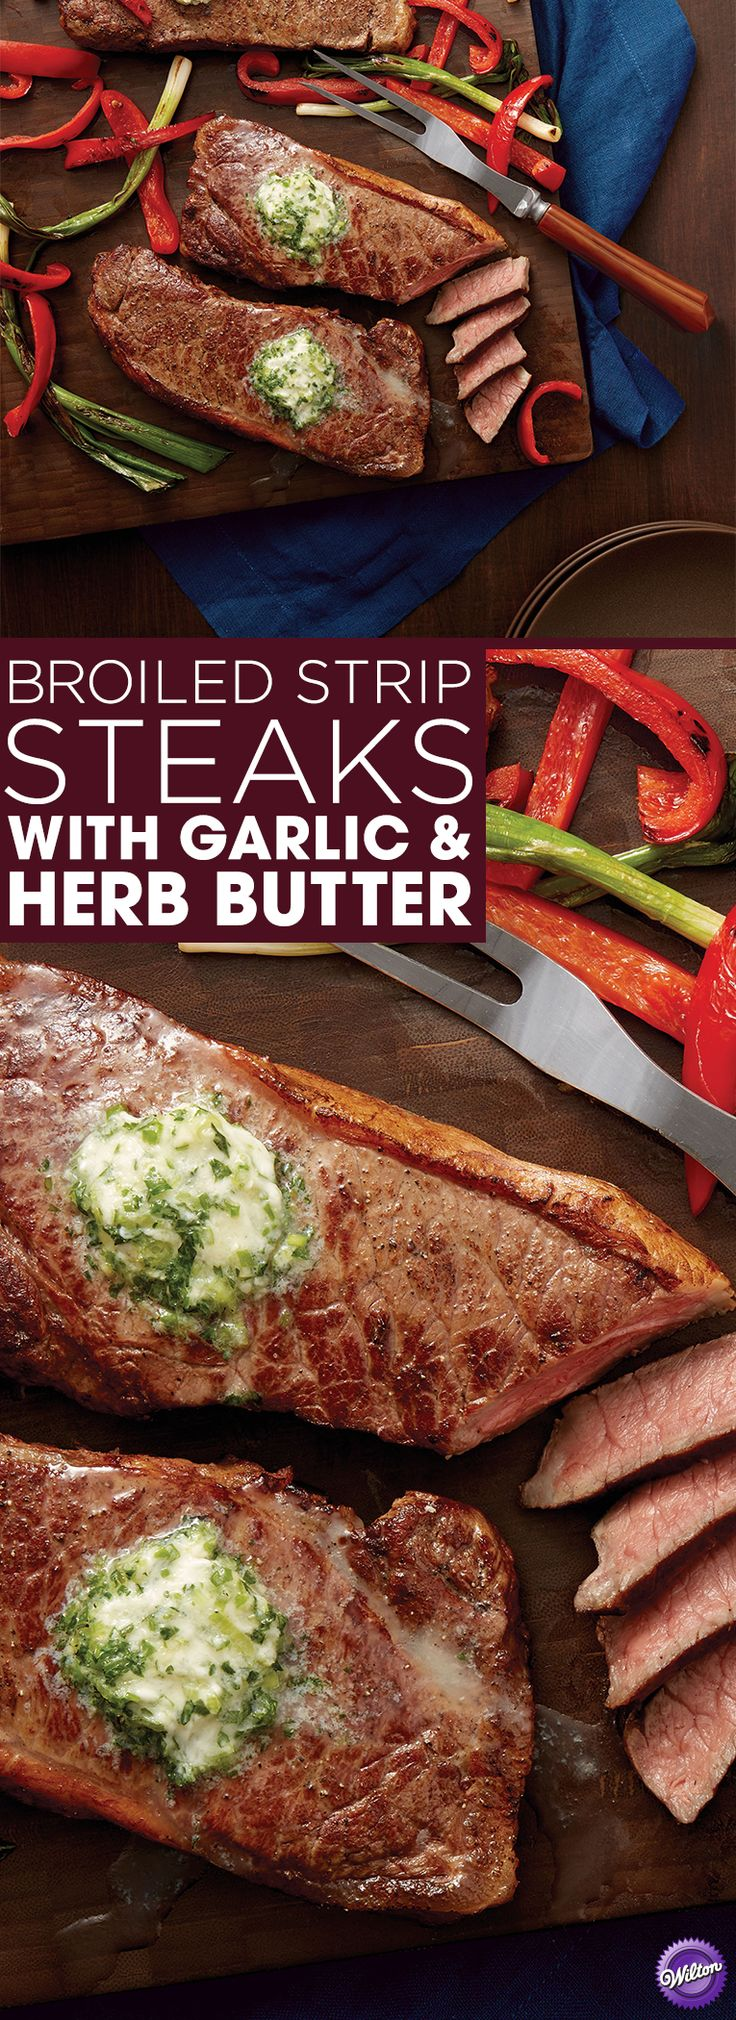 Broiled Strip Steaks Recipe - Learn how to make tender and juicy broiled strip steaks that's topped with garlic and herb butter. This is a delicious meal that any steak lover will enjoy!